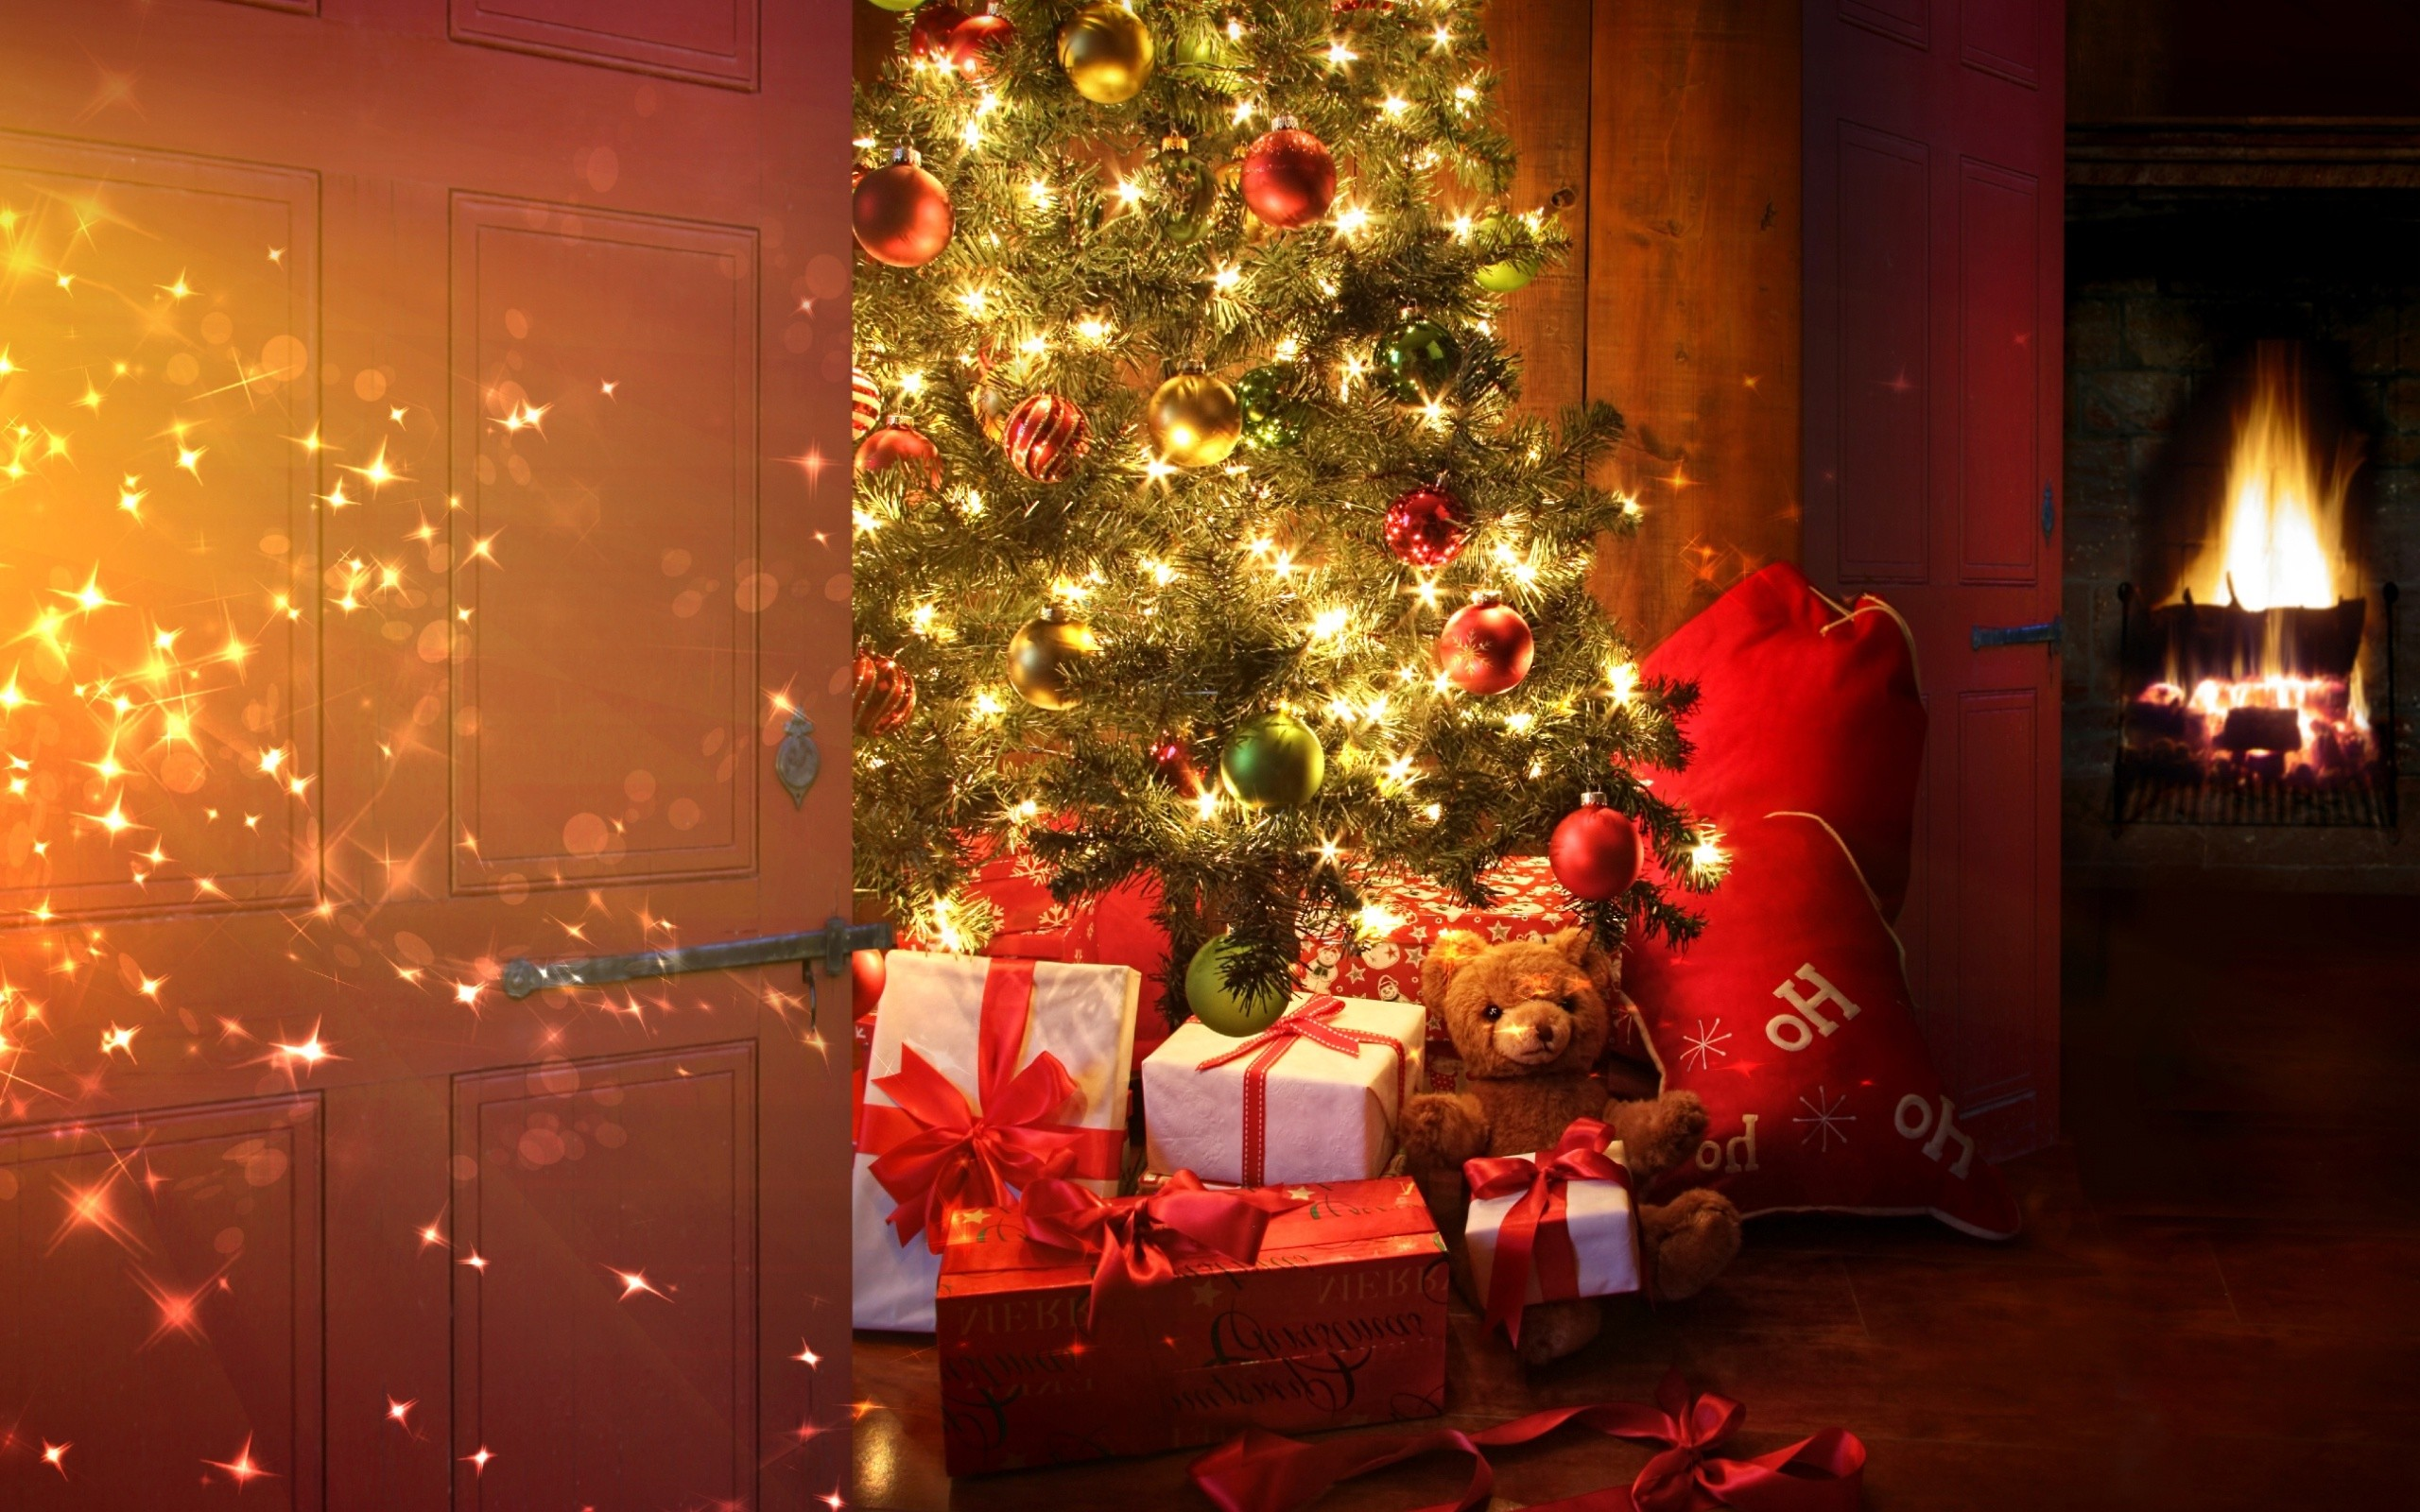 Christmas Tree with Lights and Gifts (click to view)